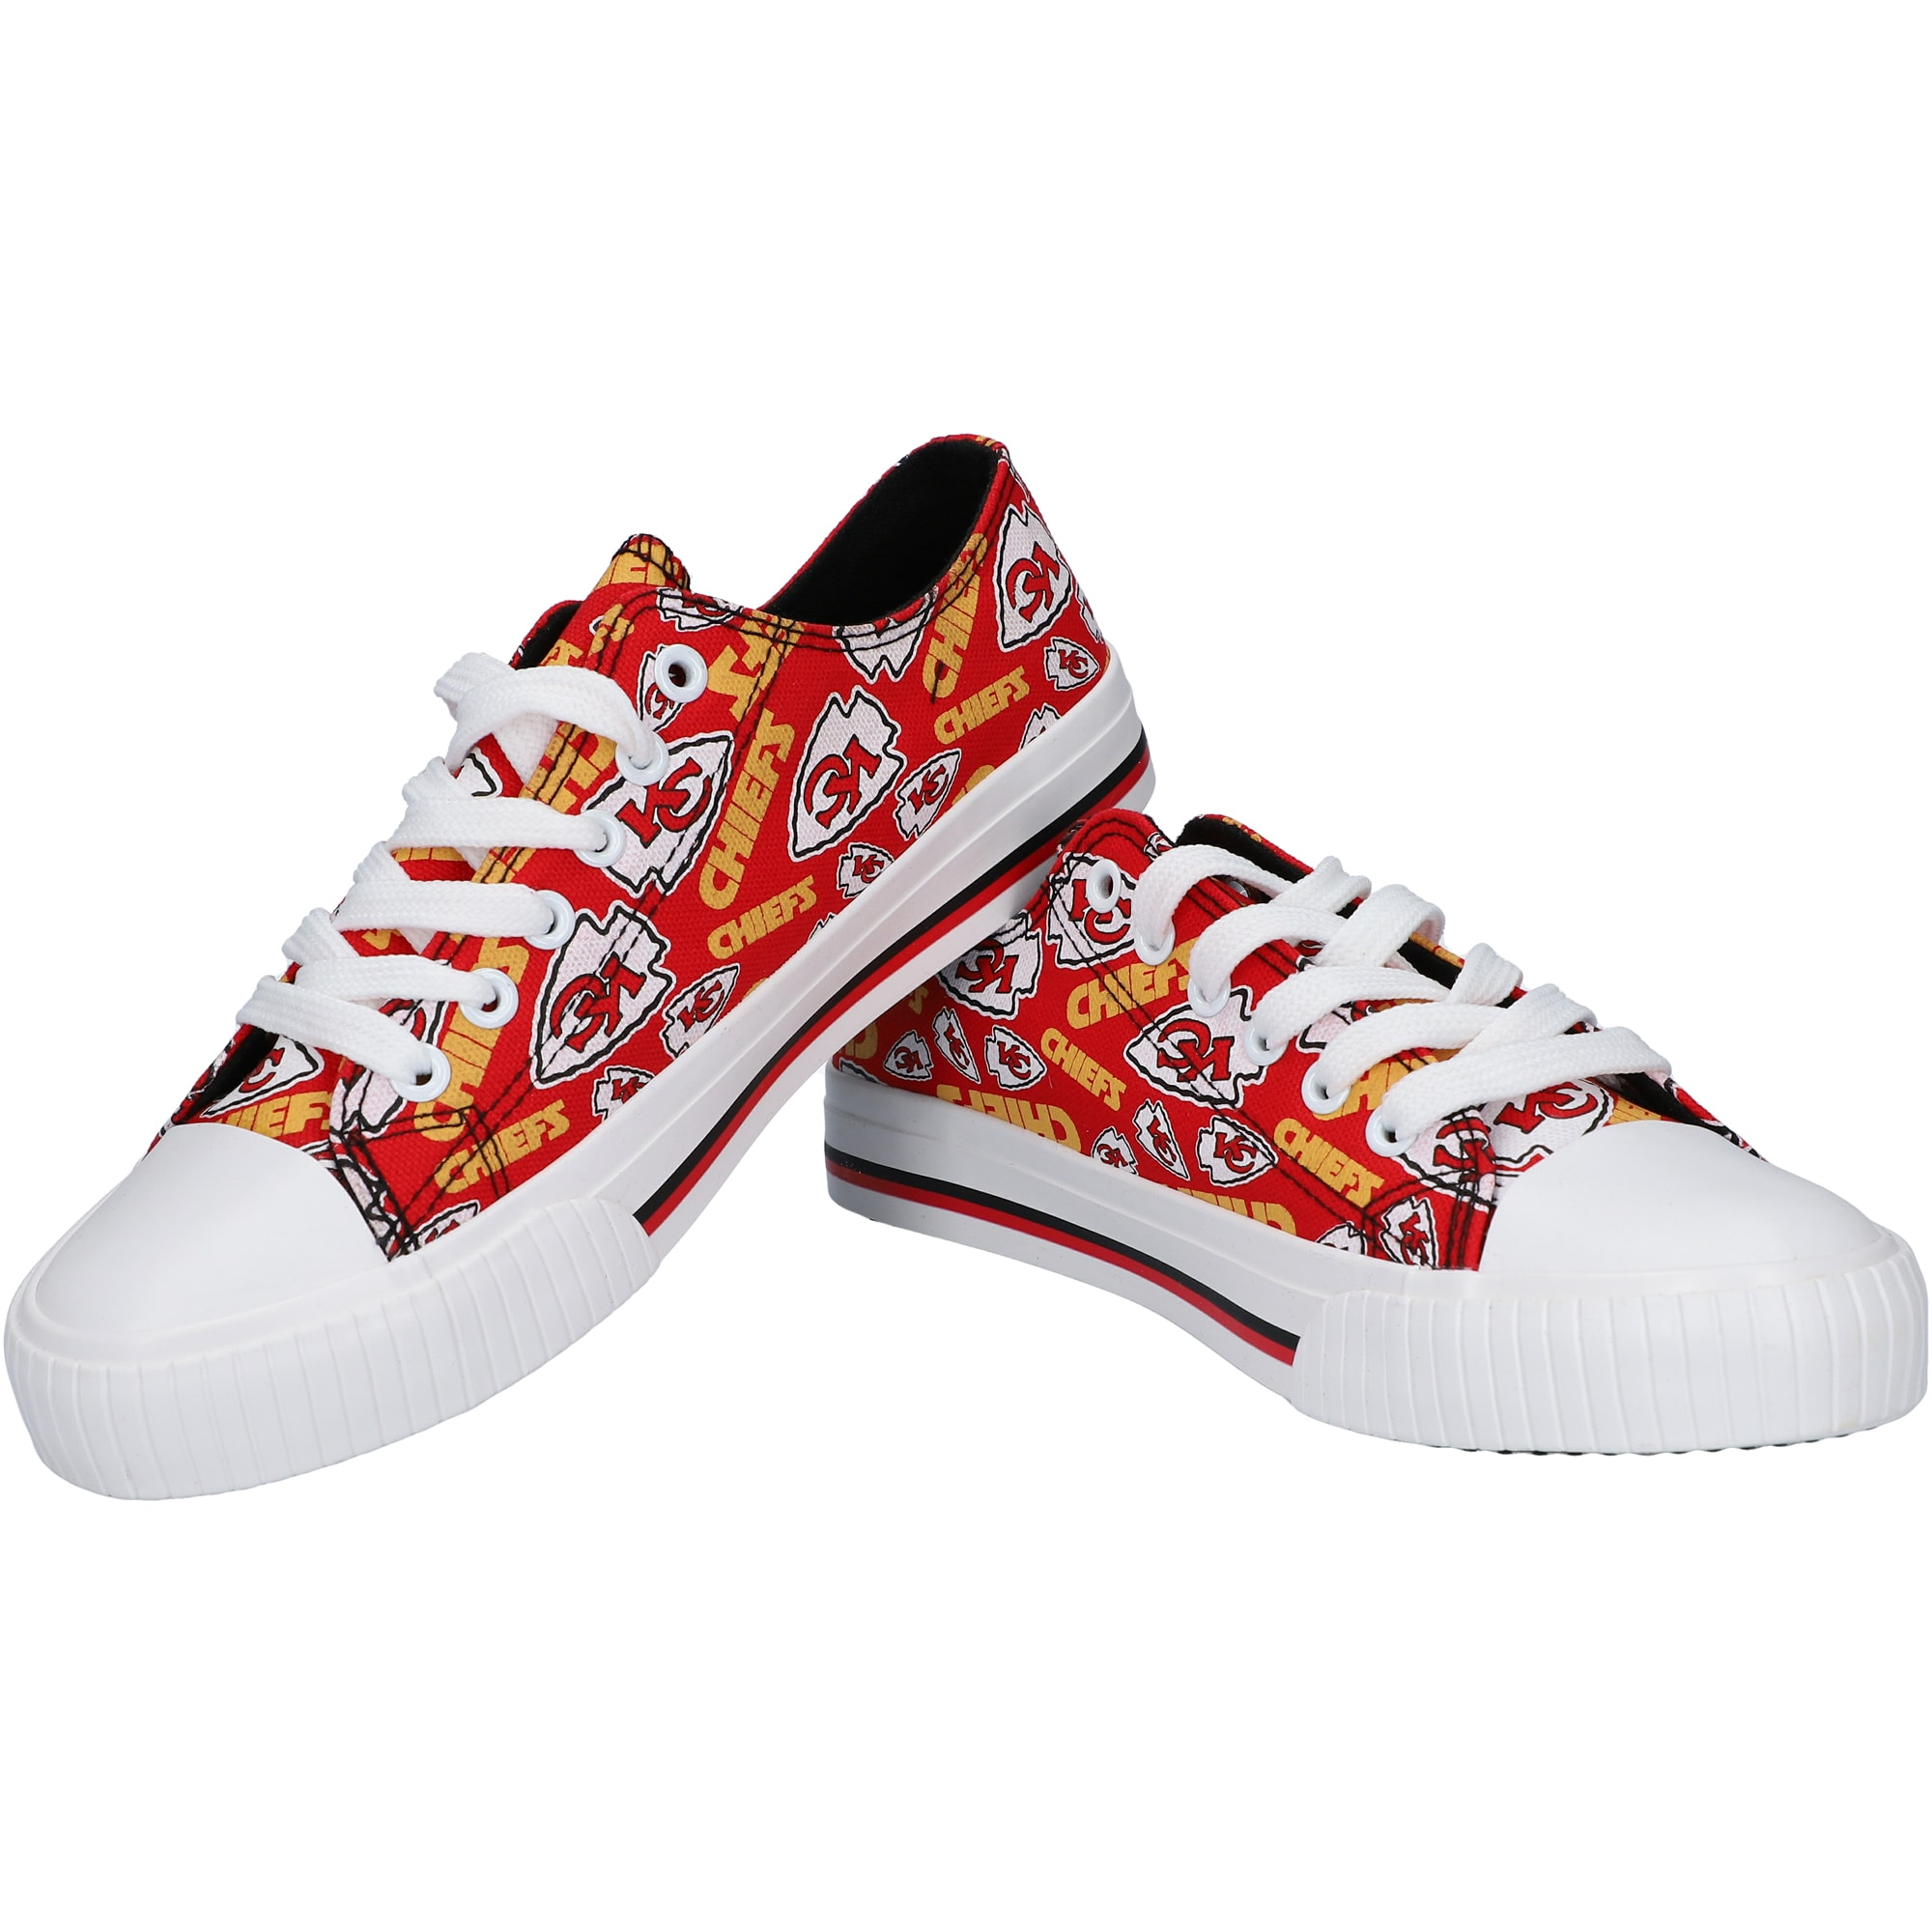 Kansas City Chiefs Women's Repeat Print Low Top Sneakers